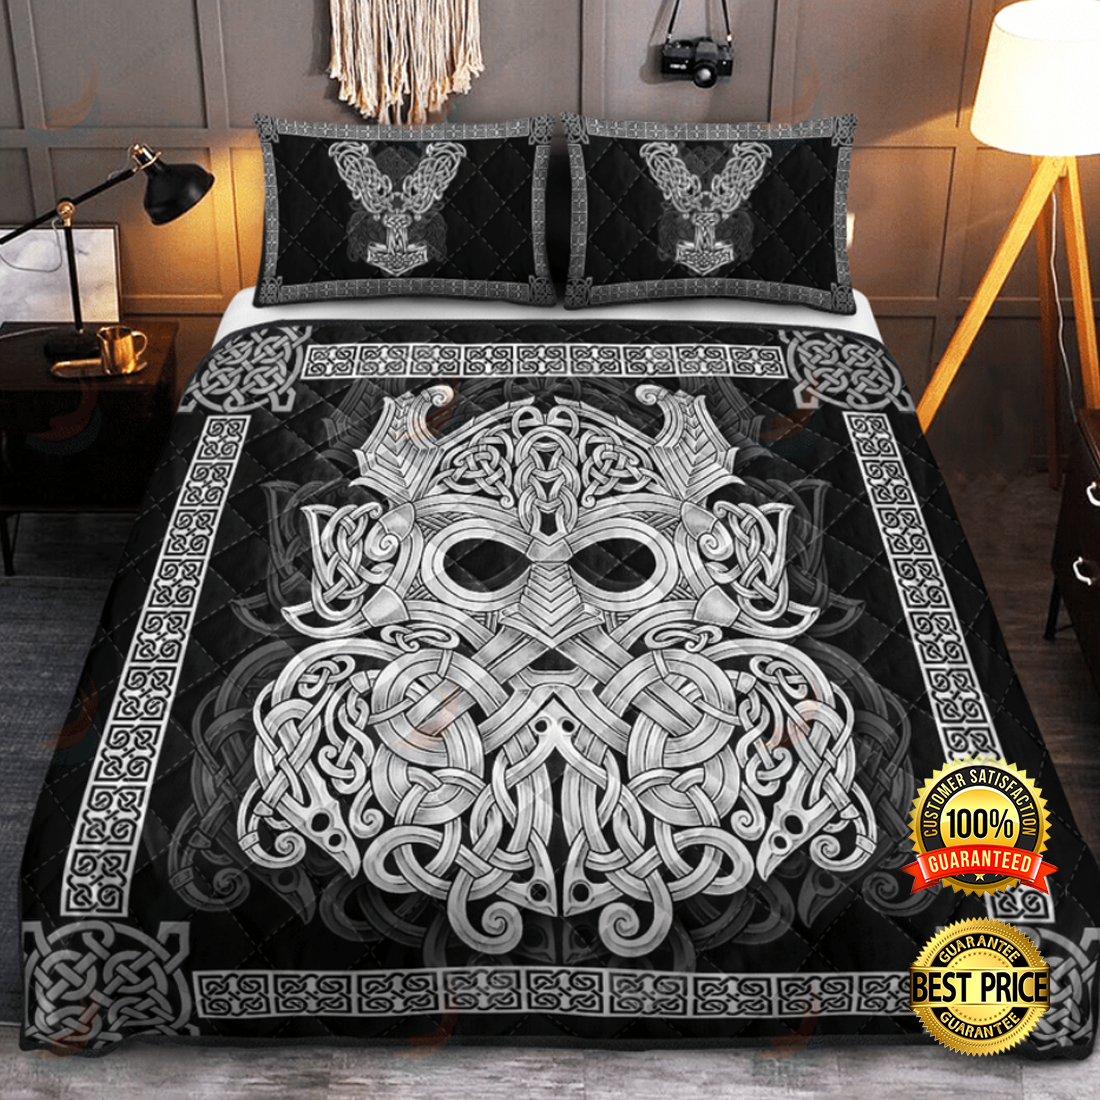 MJOLNIR ODIN VIKING BEDDING SET 6